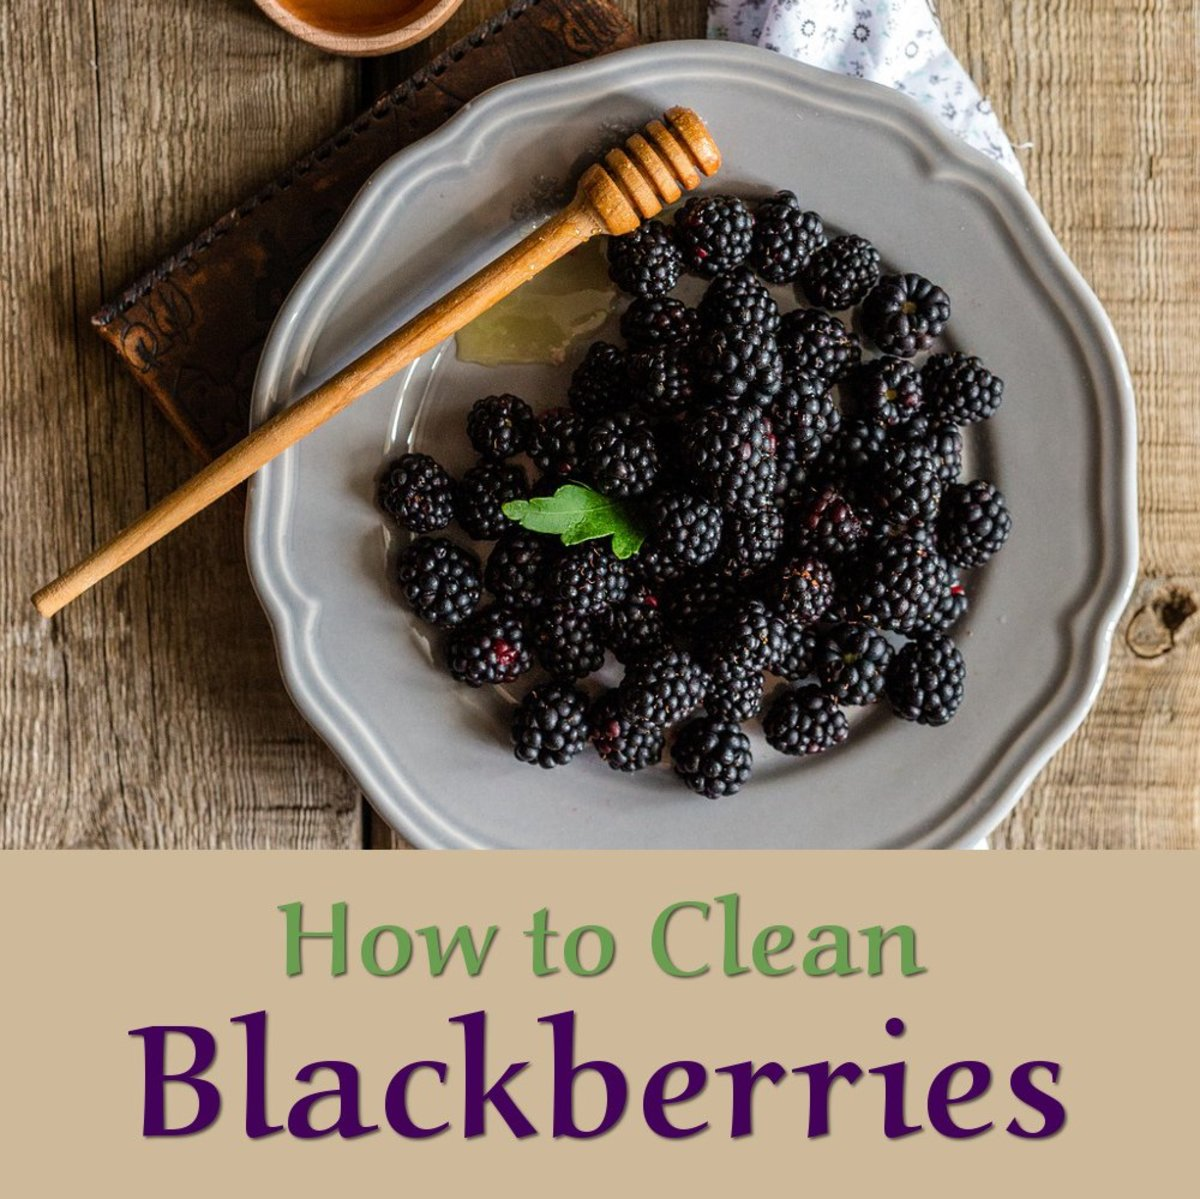 How to clean blackberries after picking them. Tips on getting these fruit really clean without ruining them. Plump juicy blackberry fruit are wonderful for delicious puddings, drinks and treats.